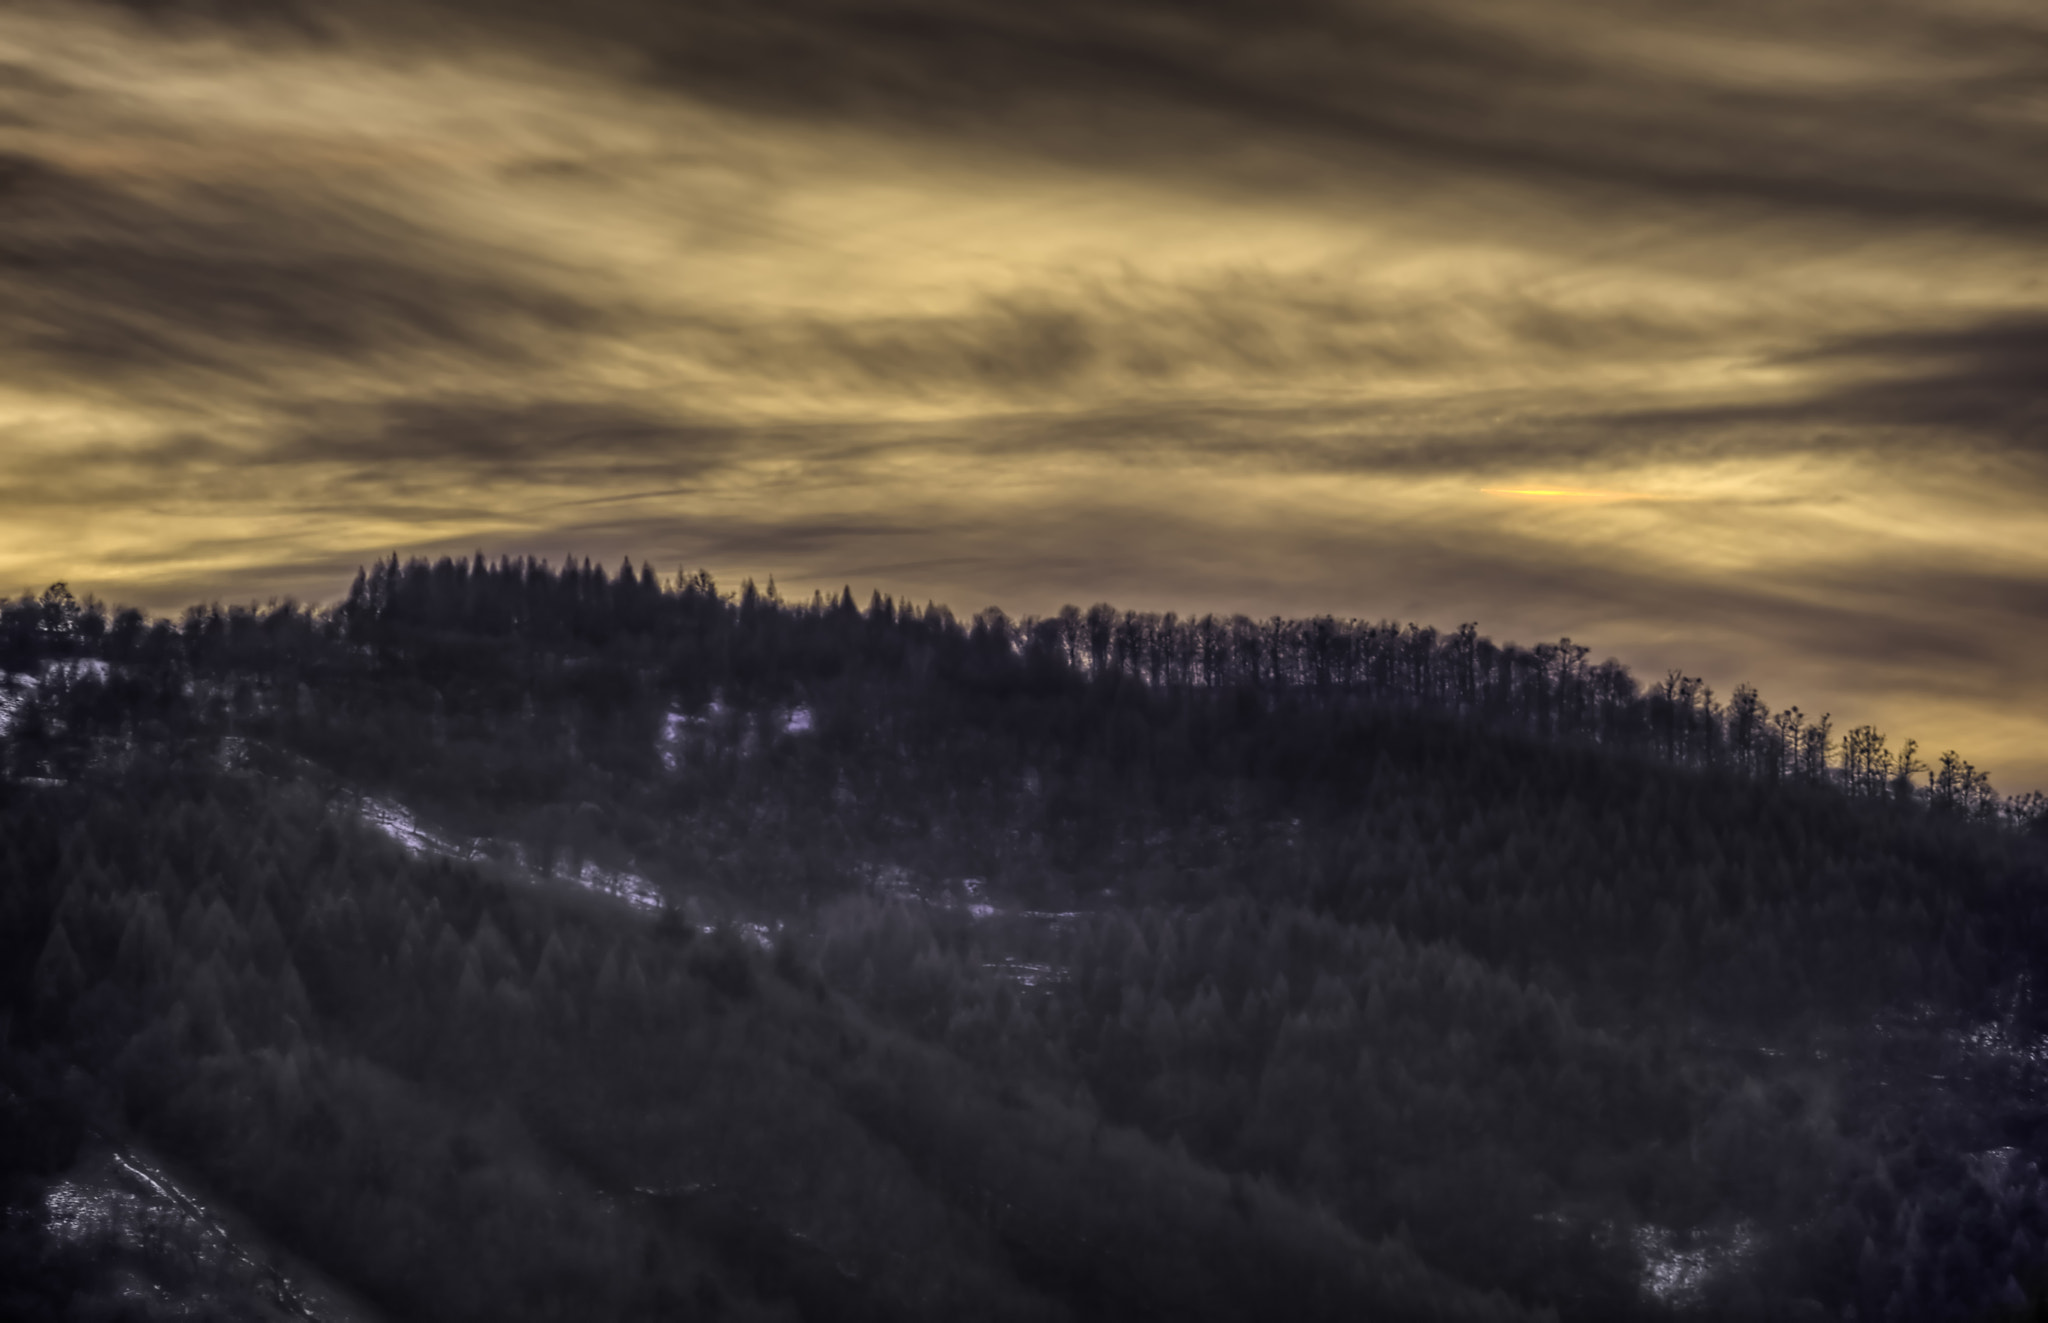 Photograph Evening sky over Solovan by Sorin Markus on 500px